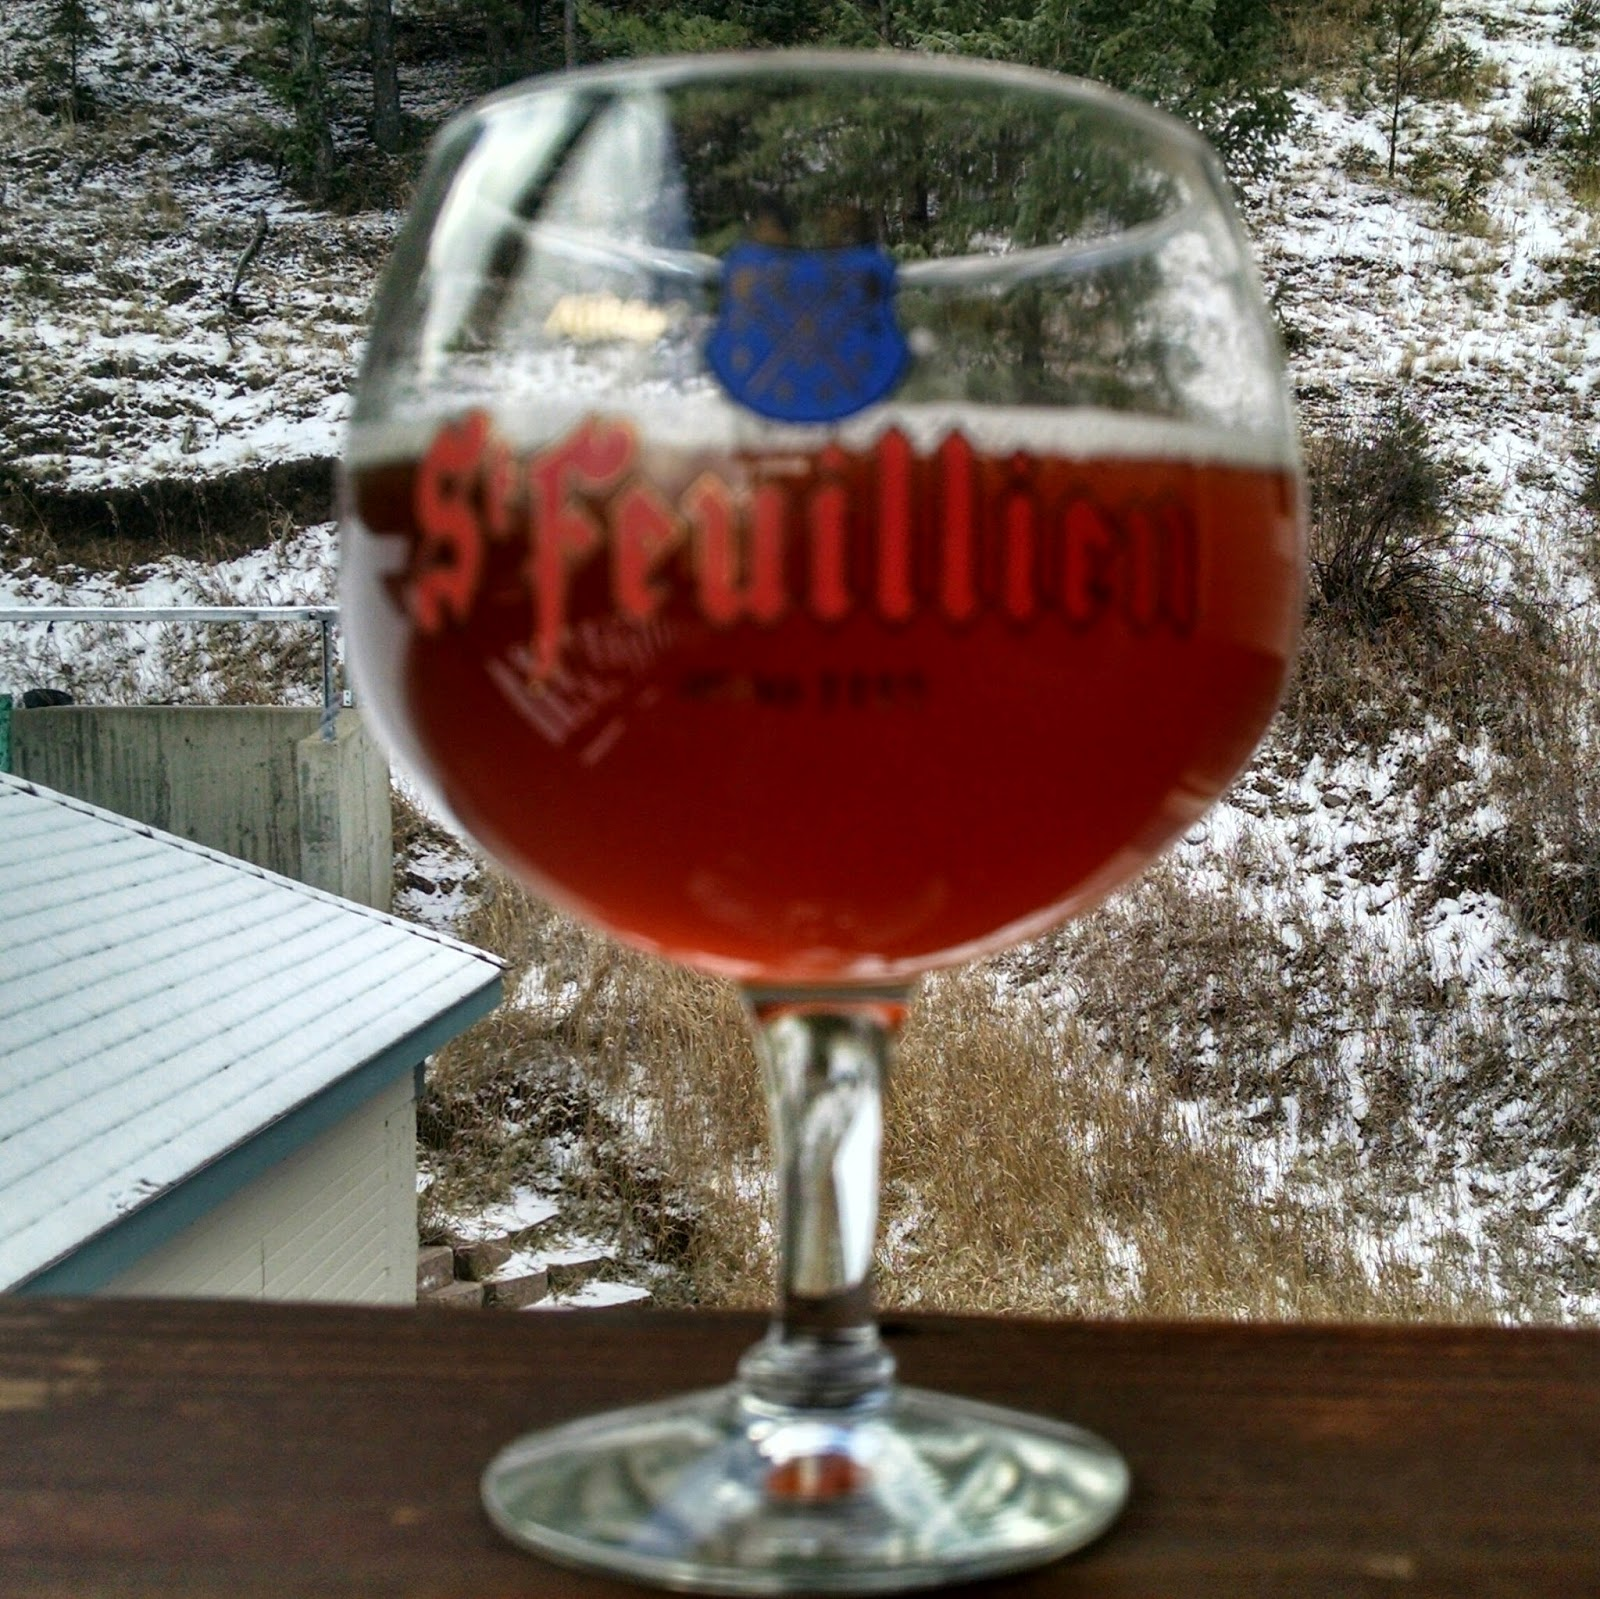 red chair nwpa ibu karlstad slipcover in the fermentor cloning northwest pale ale colorado dec